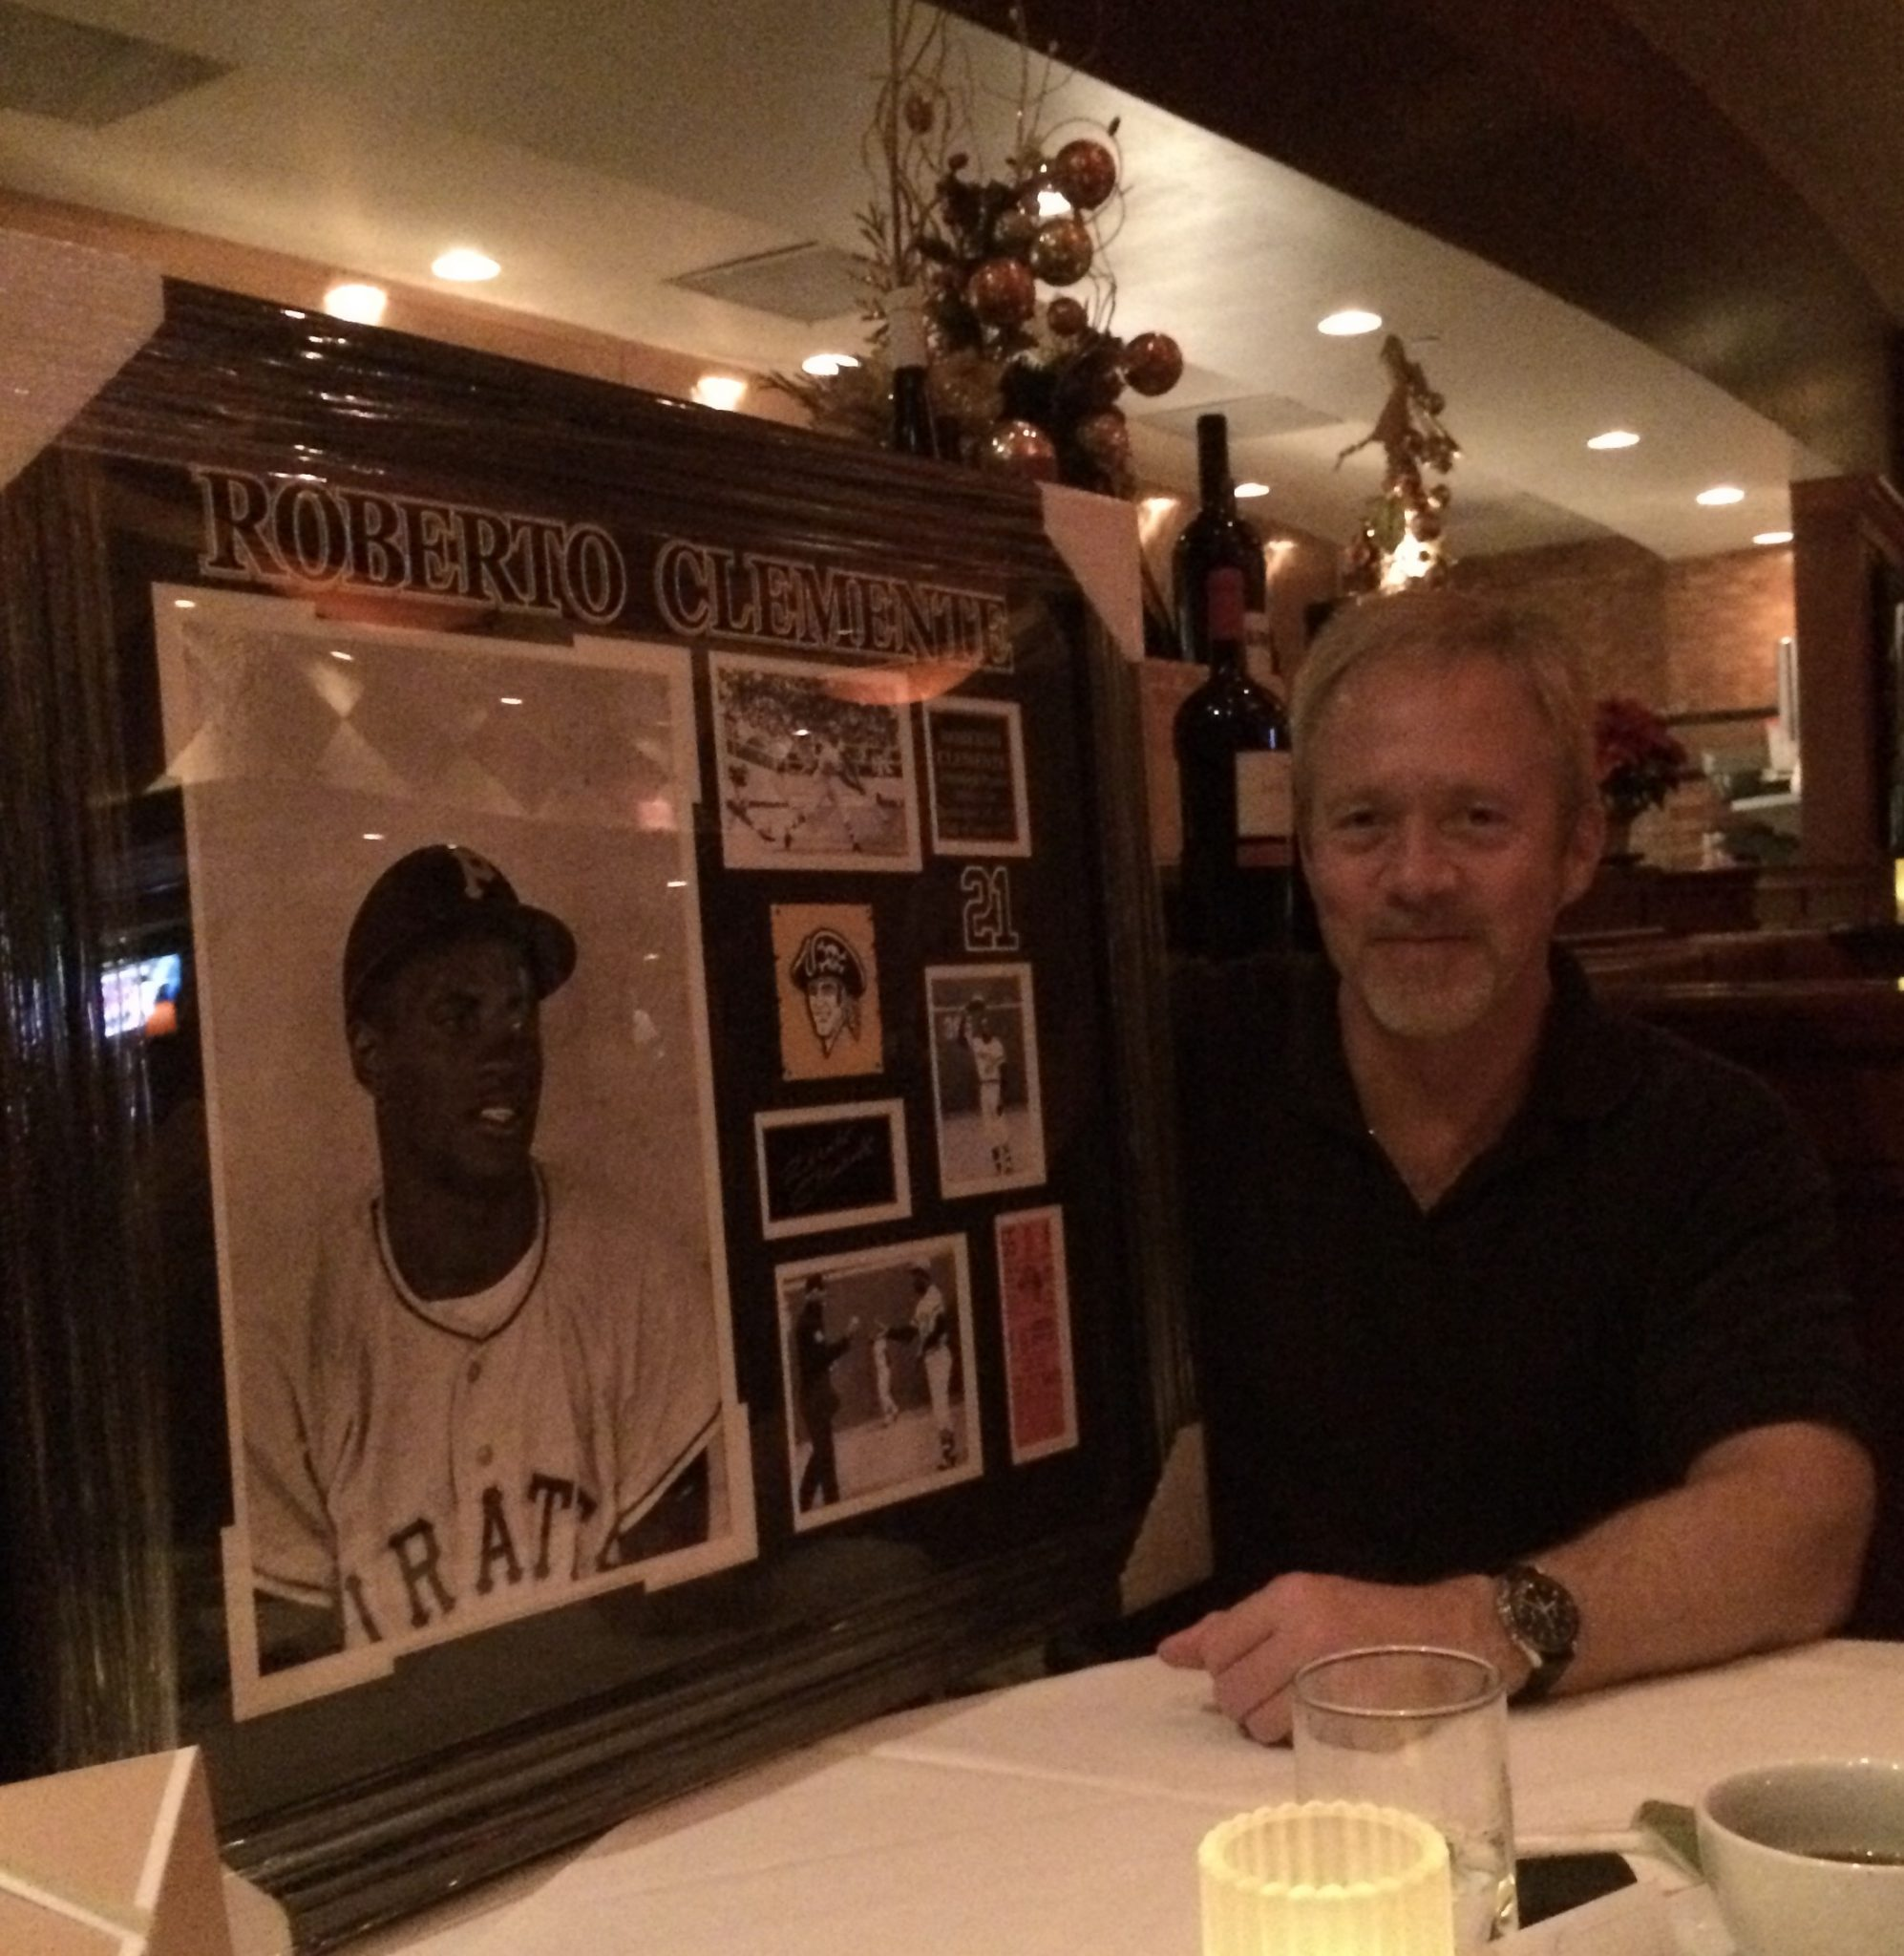 Another passion, baseball and Roberto Clemente...